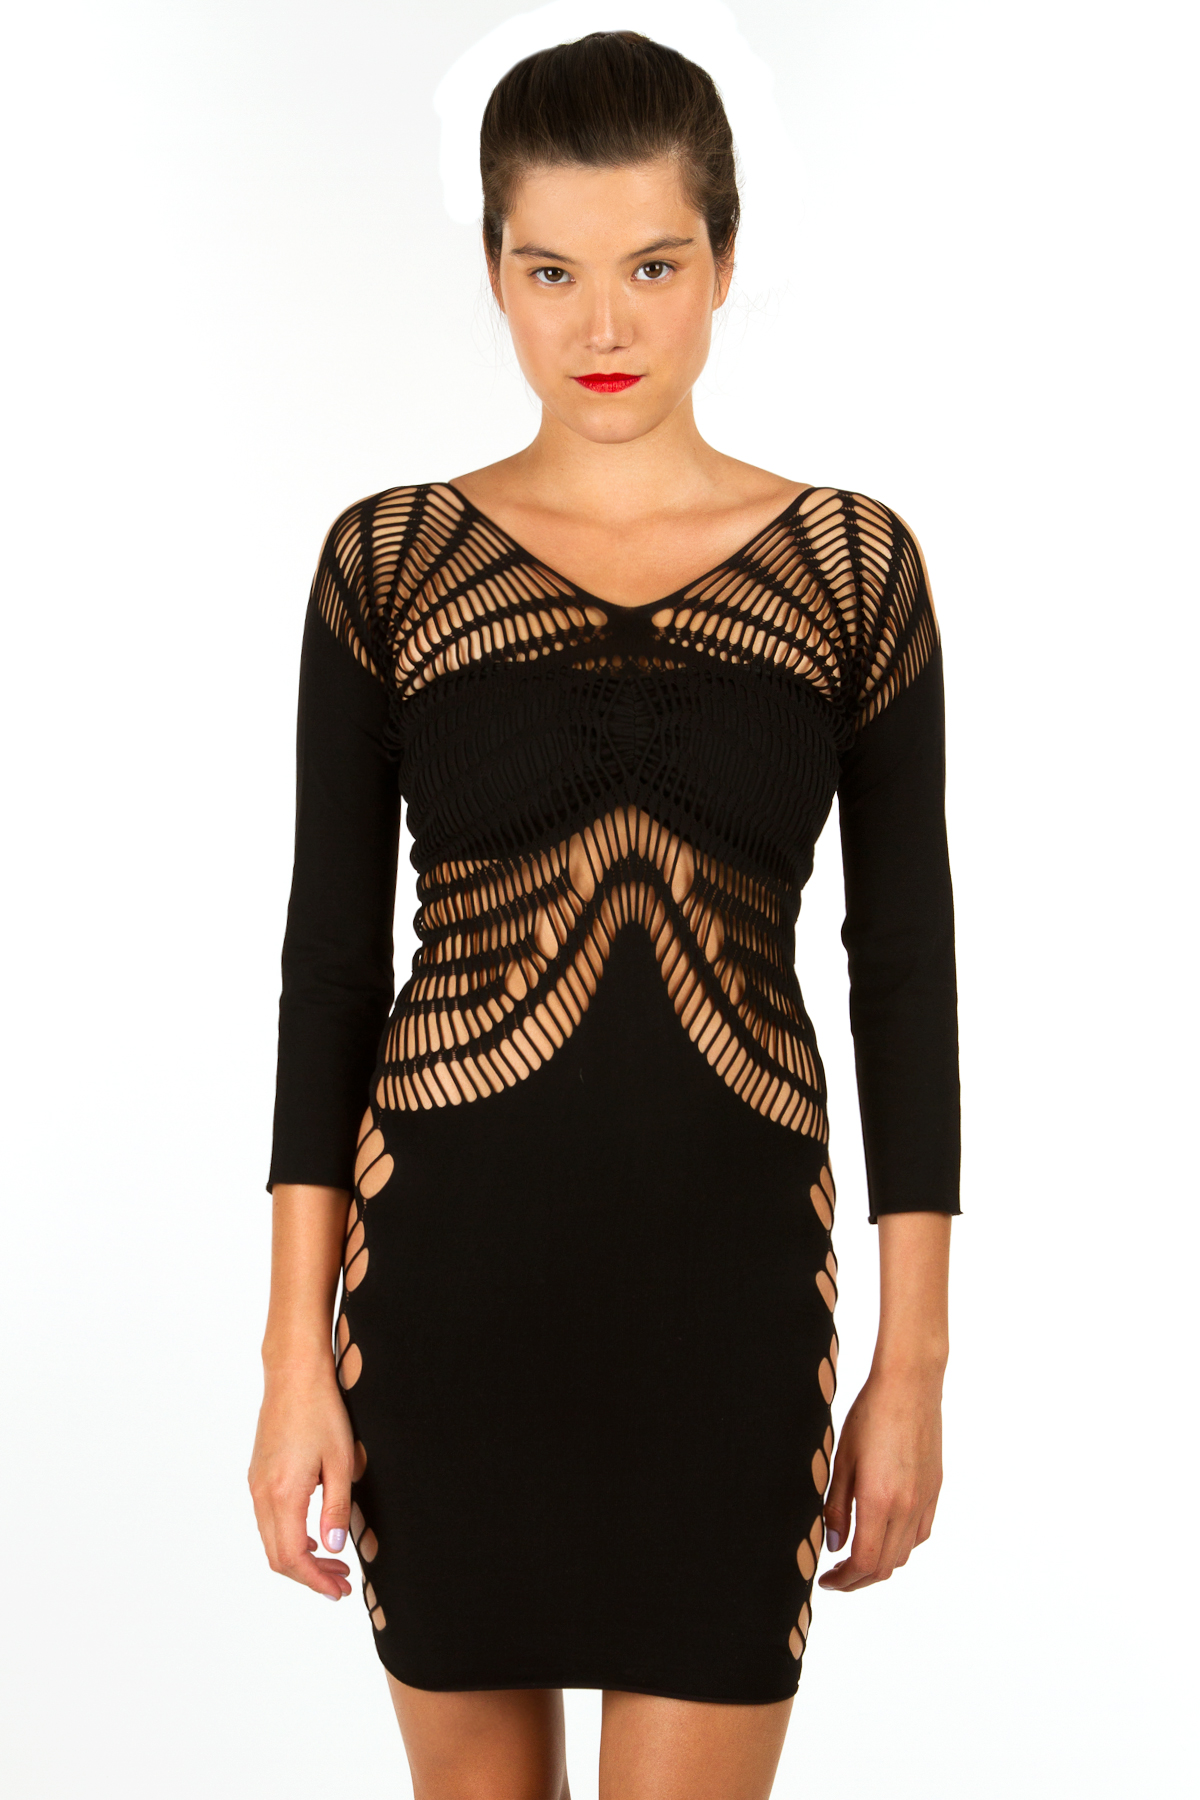 MARK FAST FASTER CLASSIC DRESS - AW11FASTER11 - WOMEN - DRESSES - MARK FAST FASTER